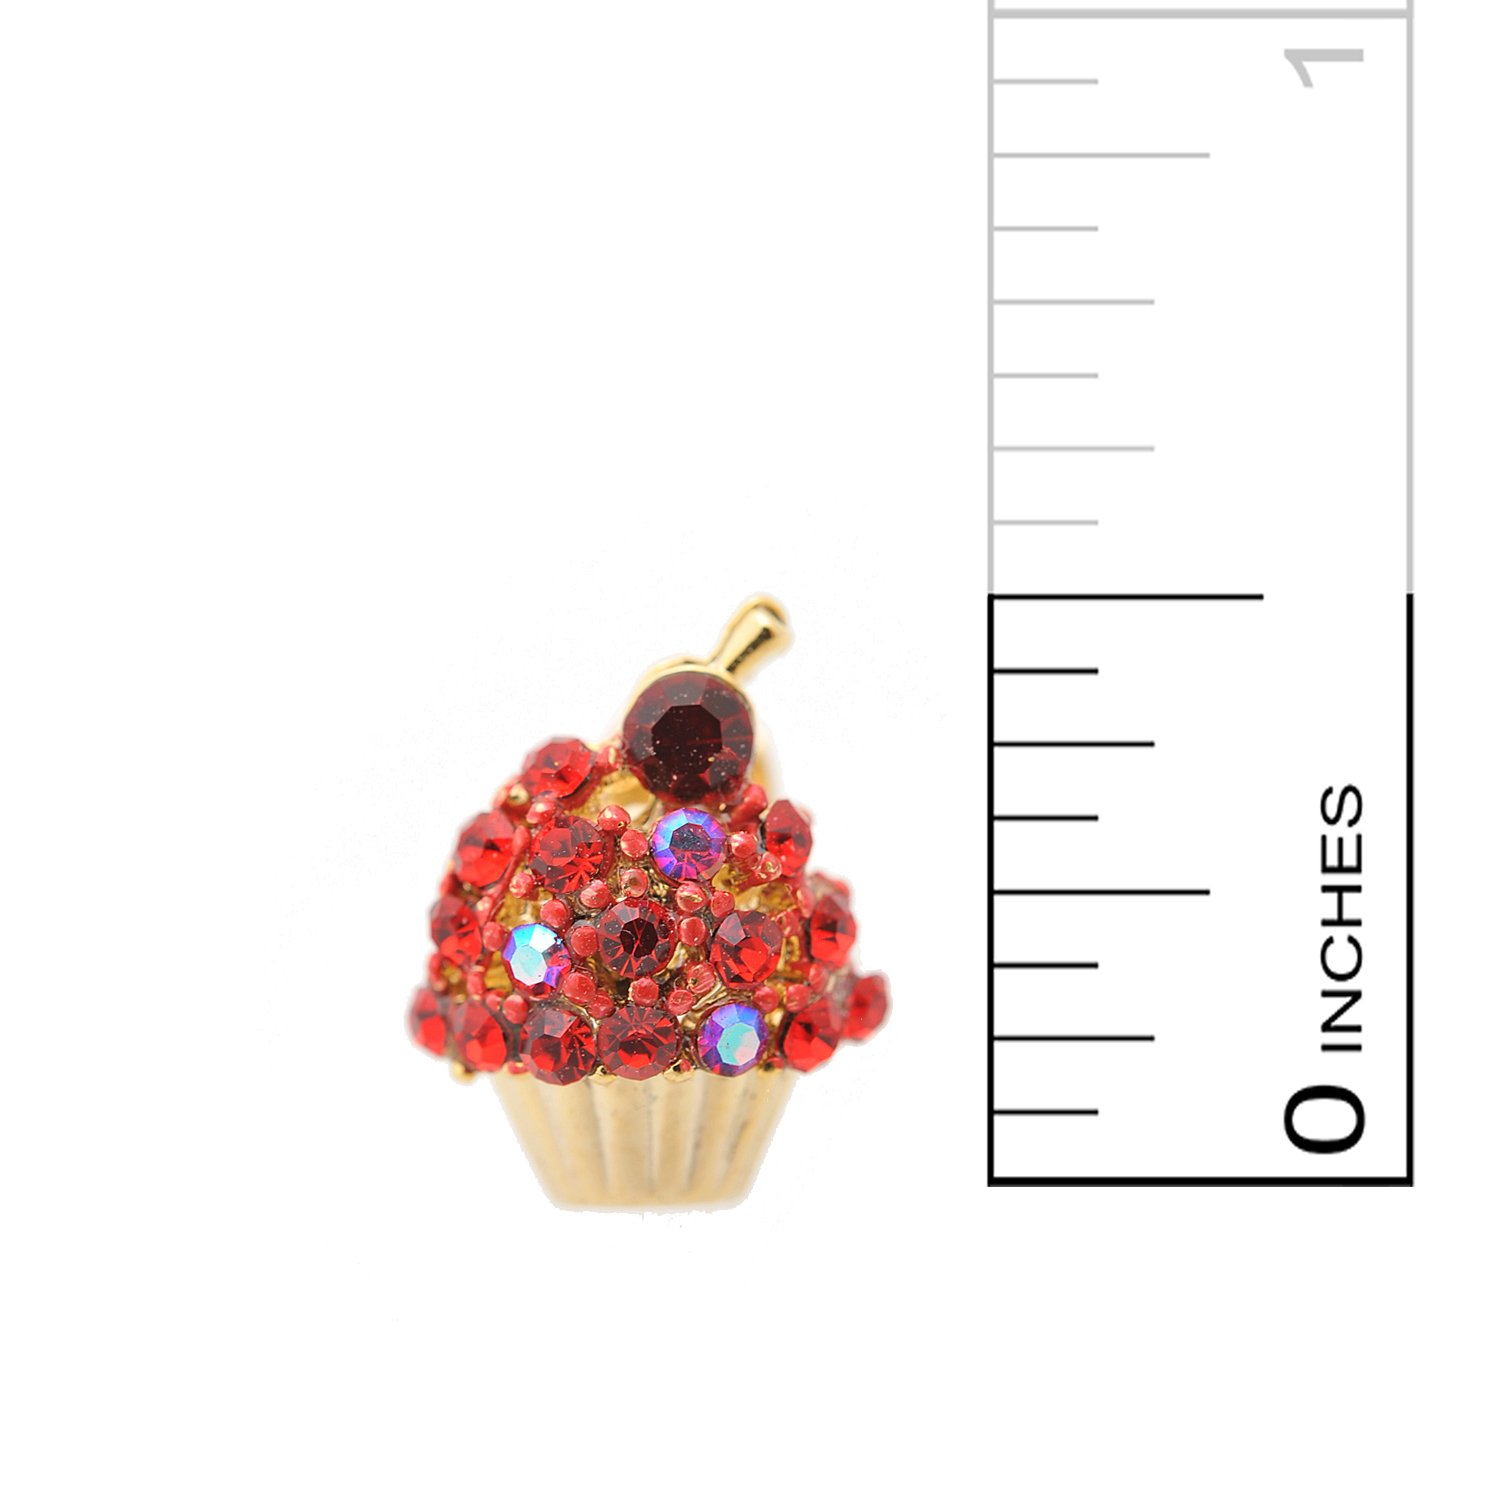 Spinningdaisy Crystal Cherry on the Top Cupcake Earrings Red